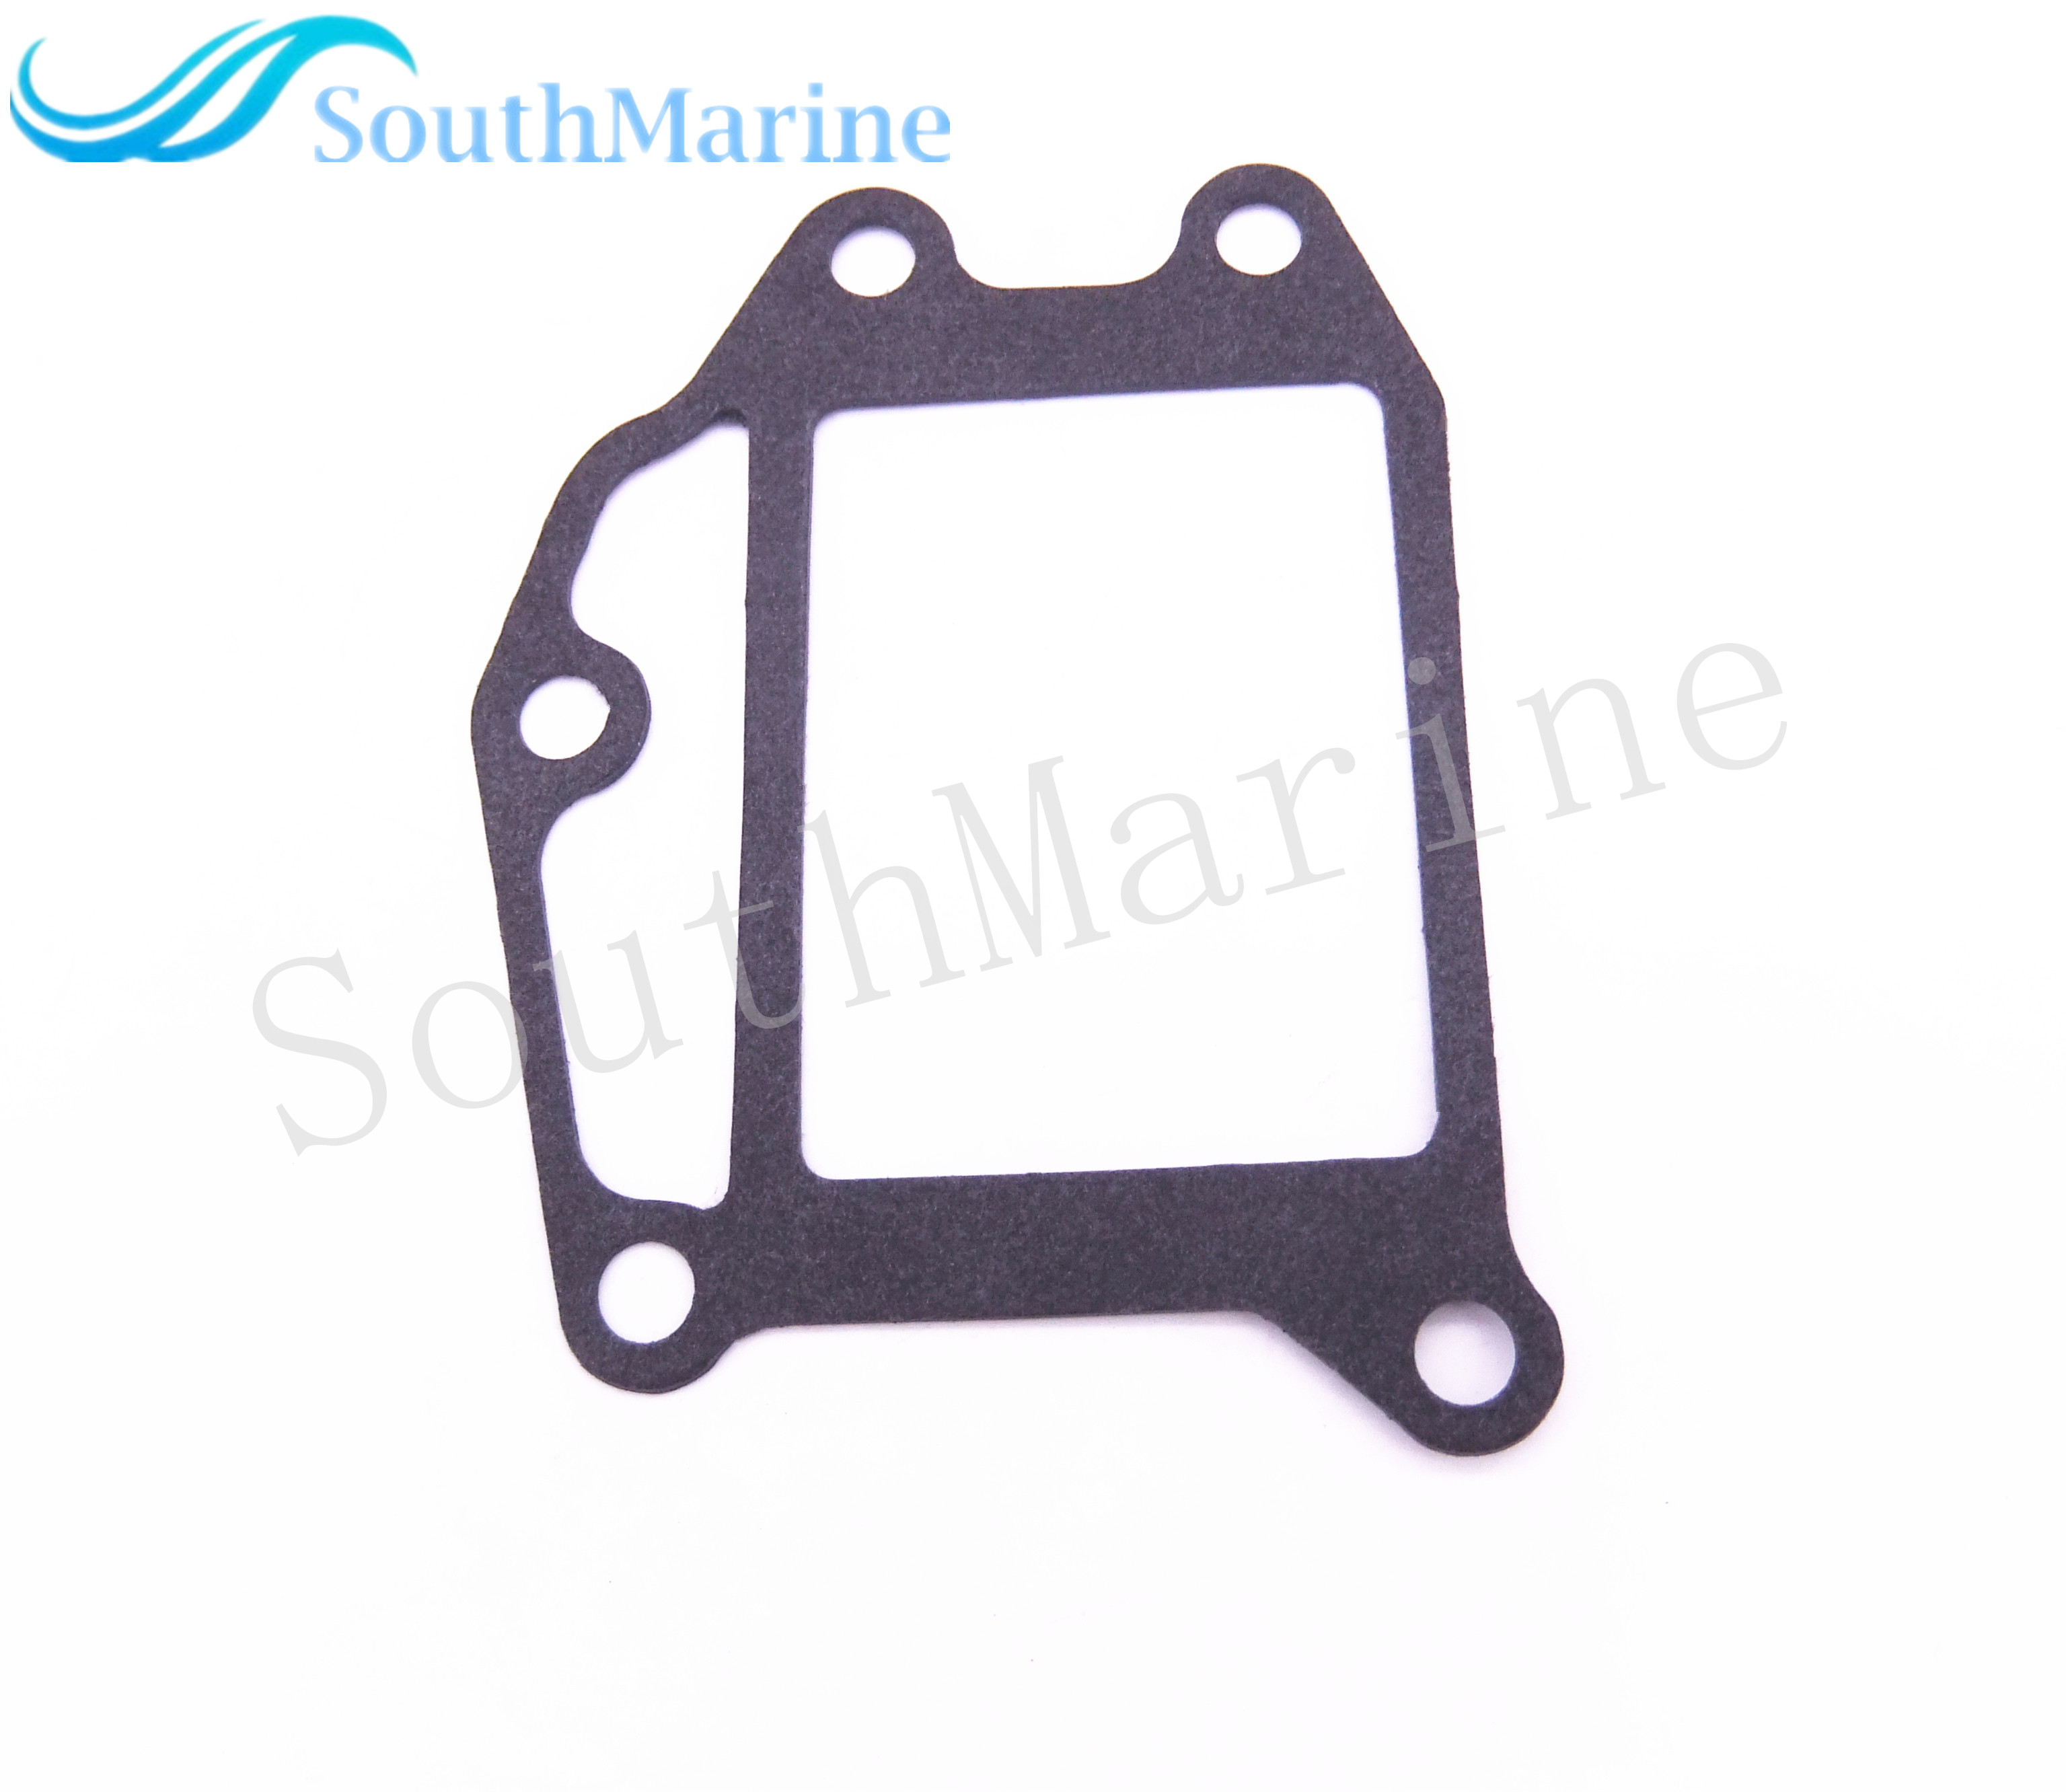 Outboard Engine 63V-41133-A1 Exhaust Manifold Gasket For Yamaha 2-Stroke 9.9hp 15hp 63V Boat Motor Free Shipping